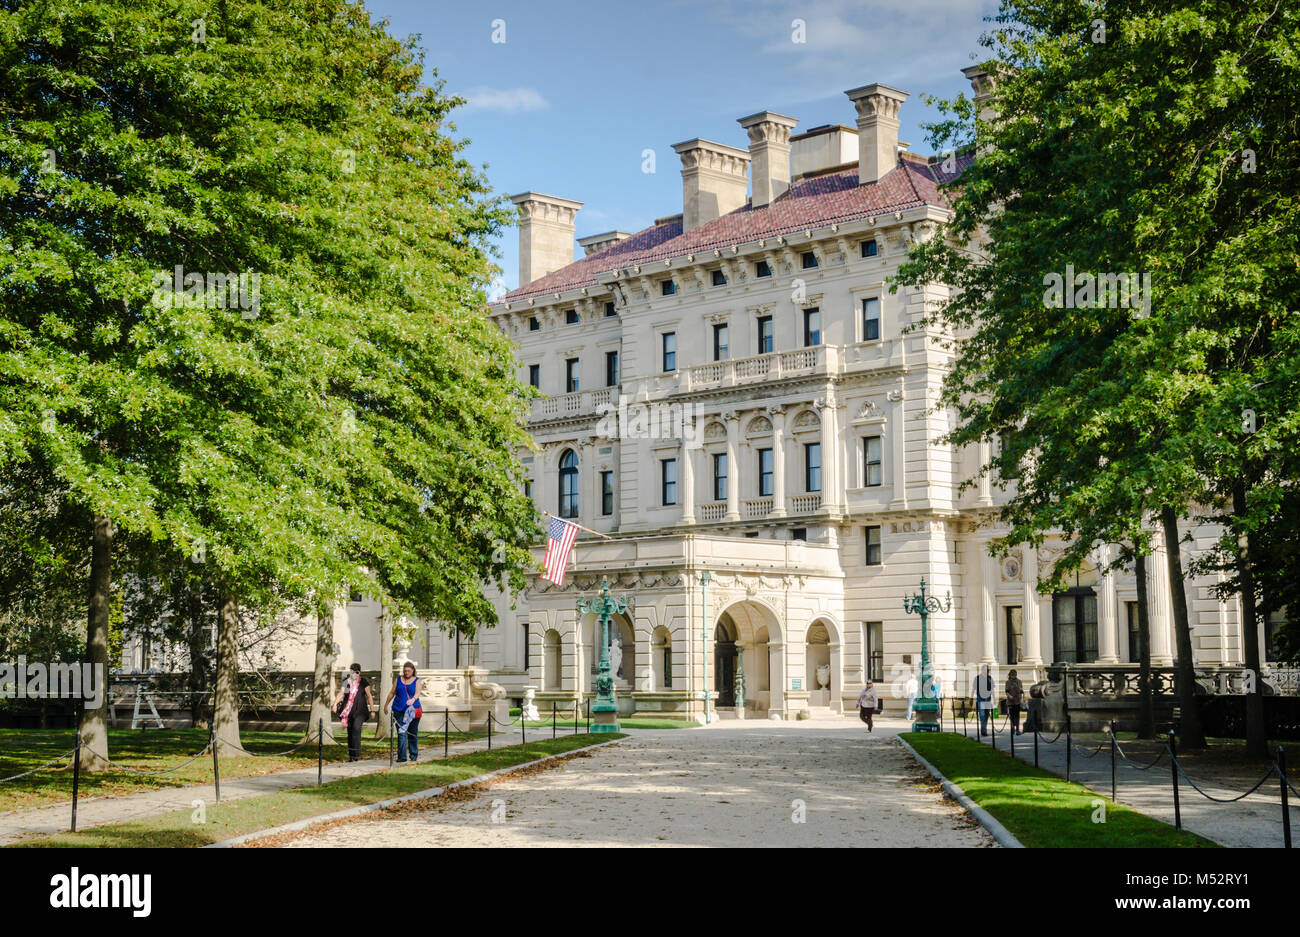 The Breakers was built as the Newport, Rhode Island summer home of Cornelius Vanderbilt II, a member of the wealthy - Stock Image